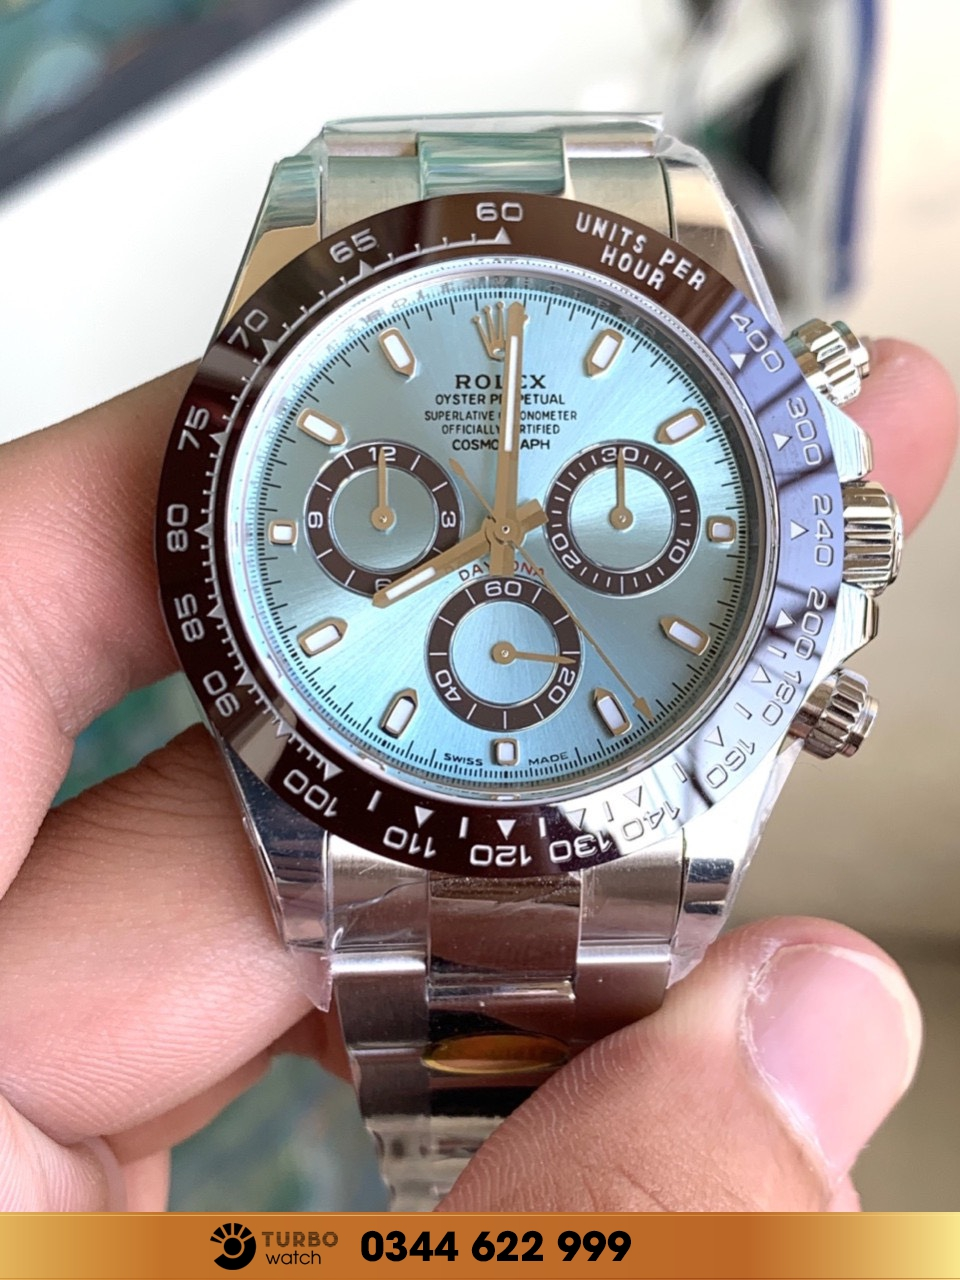 Rolex Cosmograph Daytona Ice Blue Dial Platinum Mens Watch 116506IBLSO fake 1-1 siêu cấp